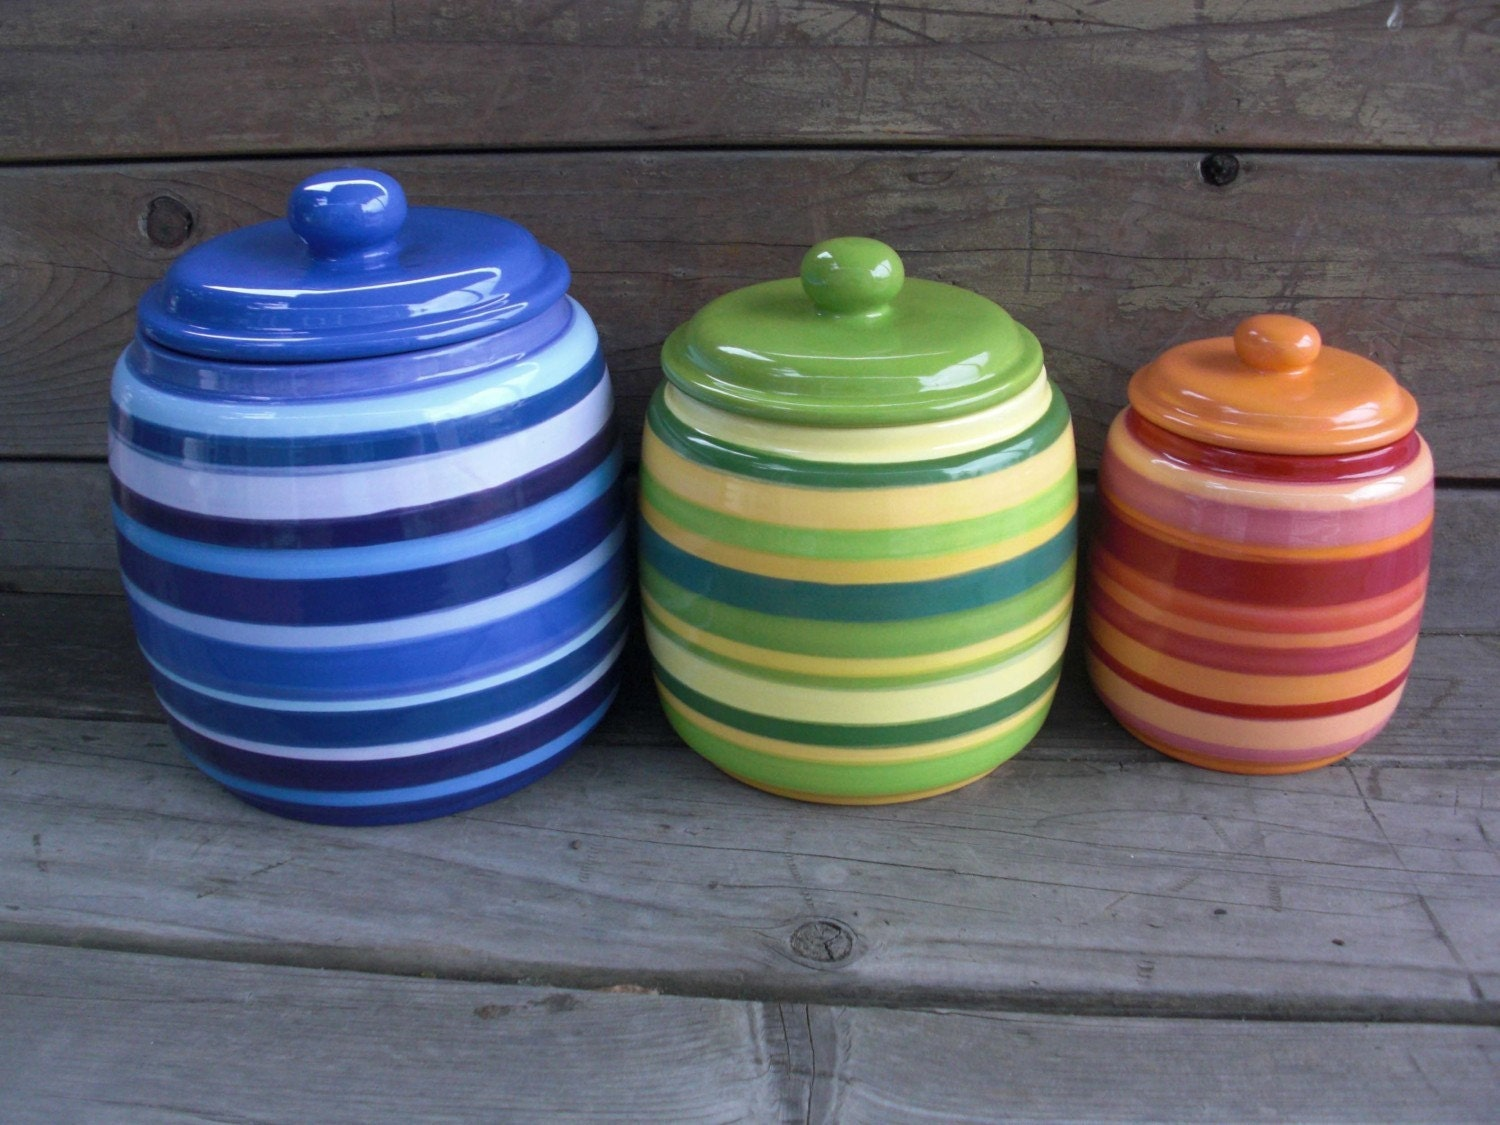 Custom Set Of 3 Kitchen Canisters Pick Your Colors And. Ideas For Feature Wall In Living Room. Design Idea For Living Room. Living Room Dimensions Average. Living Room Packages On Sale. Interior Decorating Ideas For Living Room. Corner Living Room Cabinets. Interior Paint Color Ideas Living Room. Computer Living Room